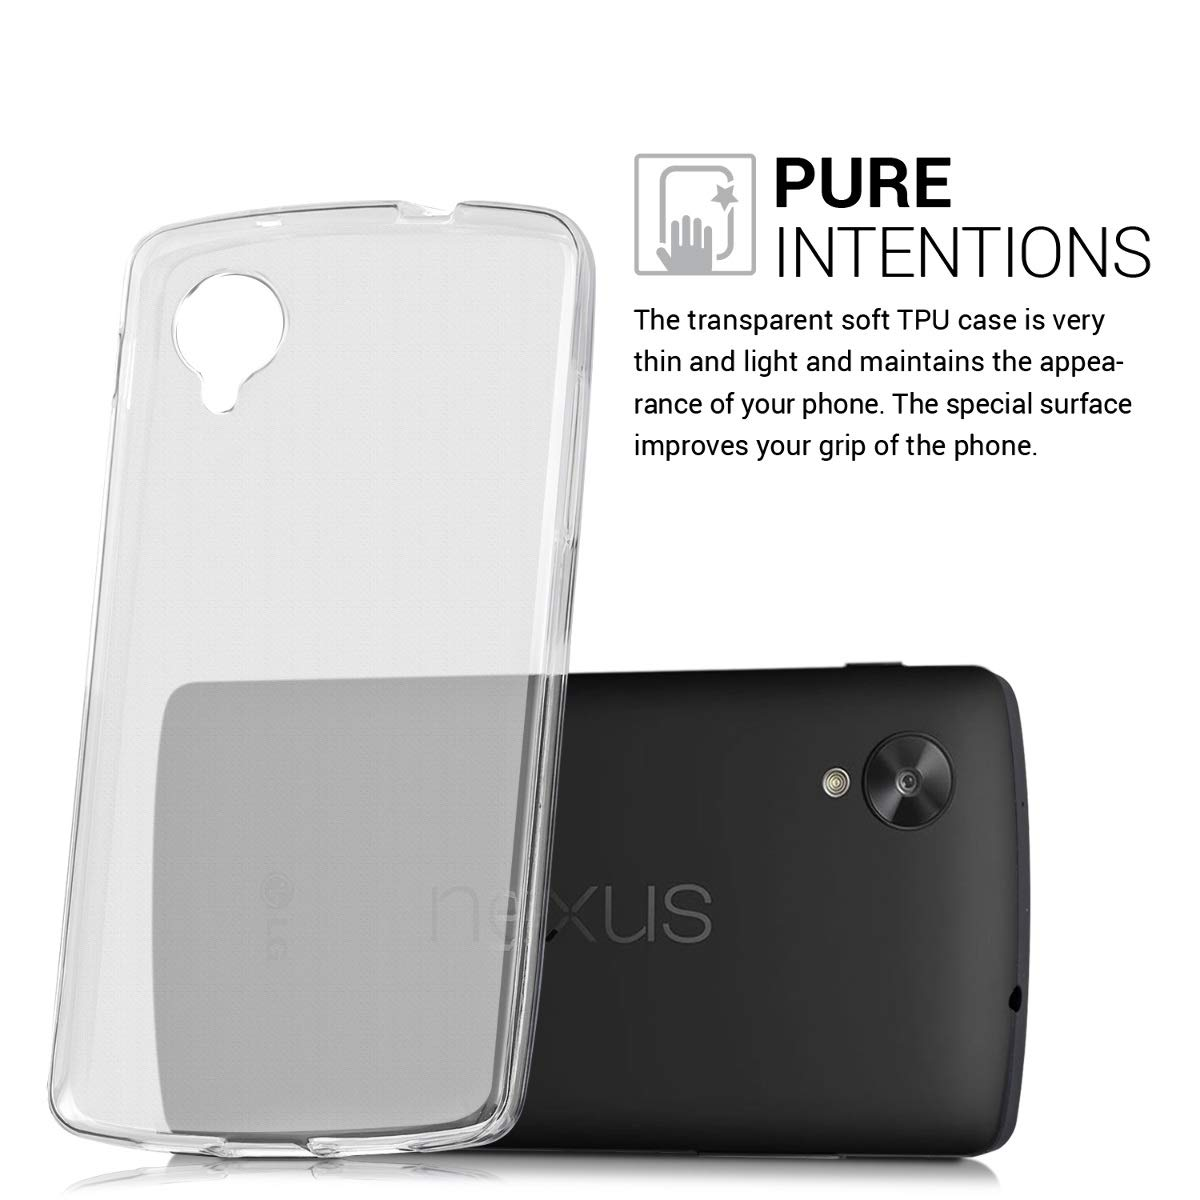 kwmobile Crystal Case for LG Google Nexus 5 - Soft Flexible TPU Silicone Protective Cover - Matte Transparent